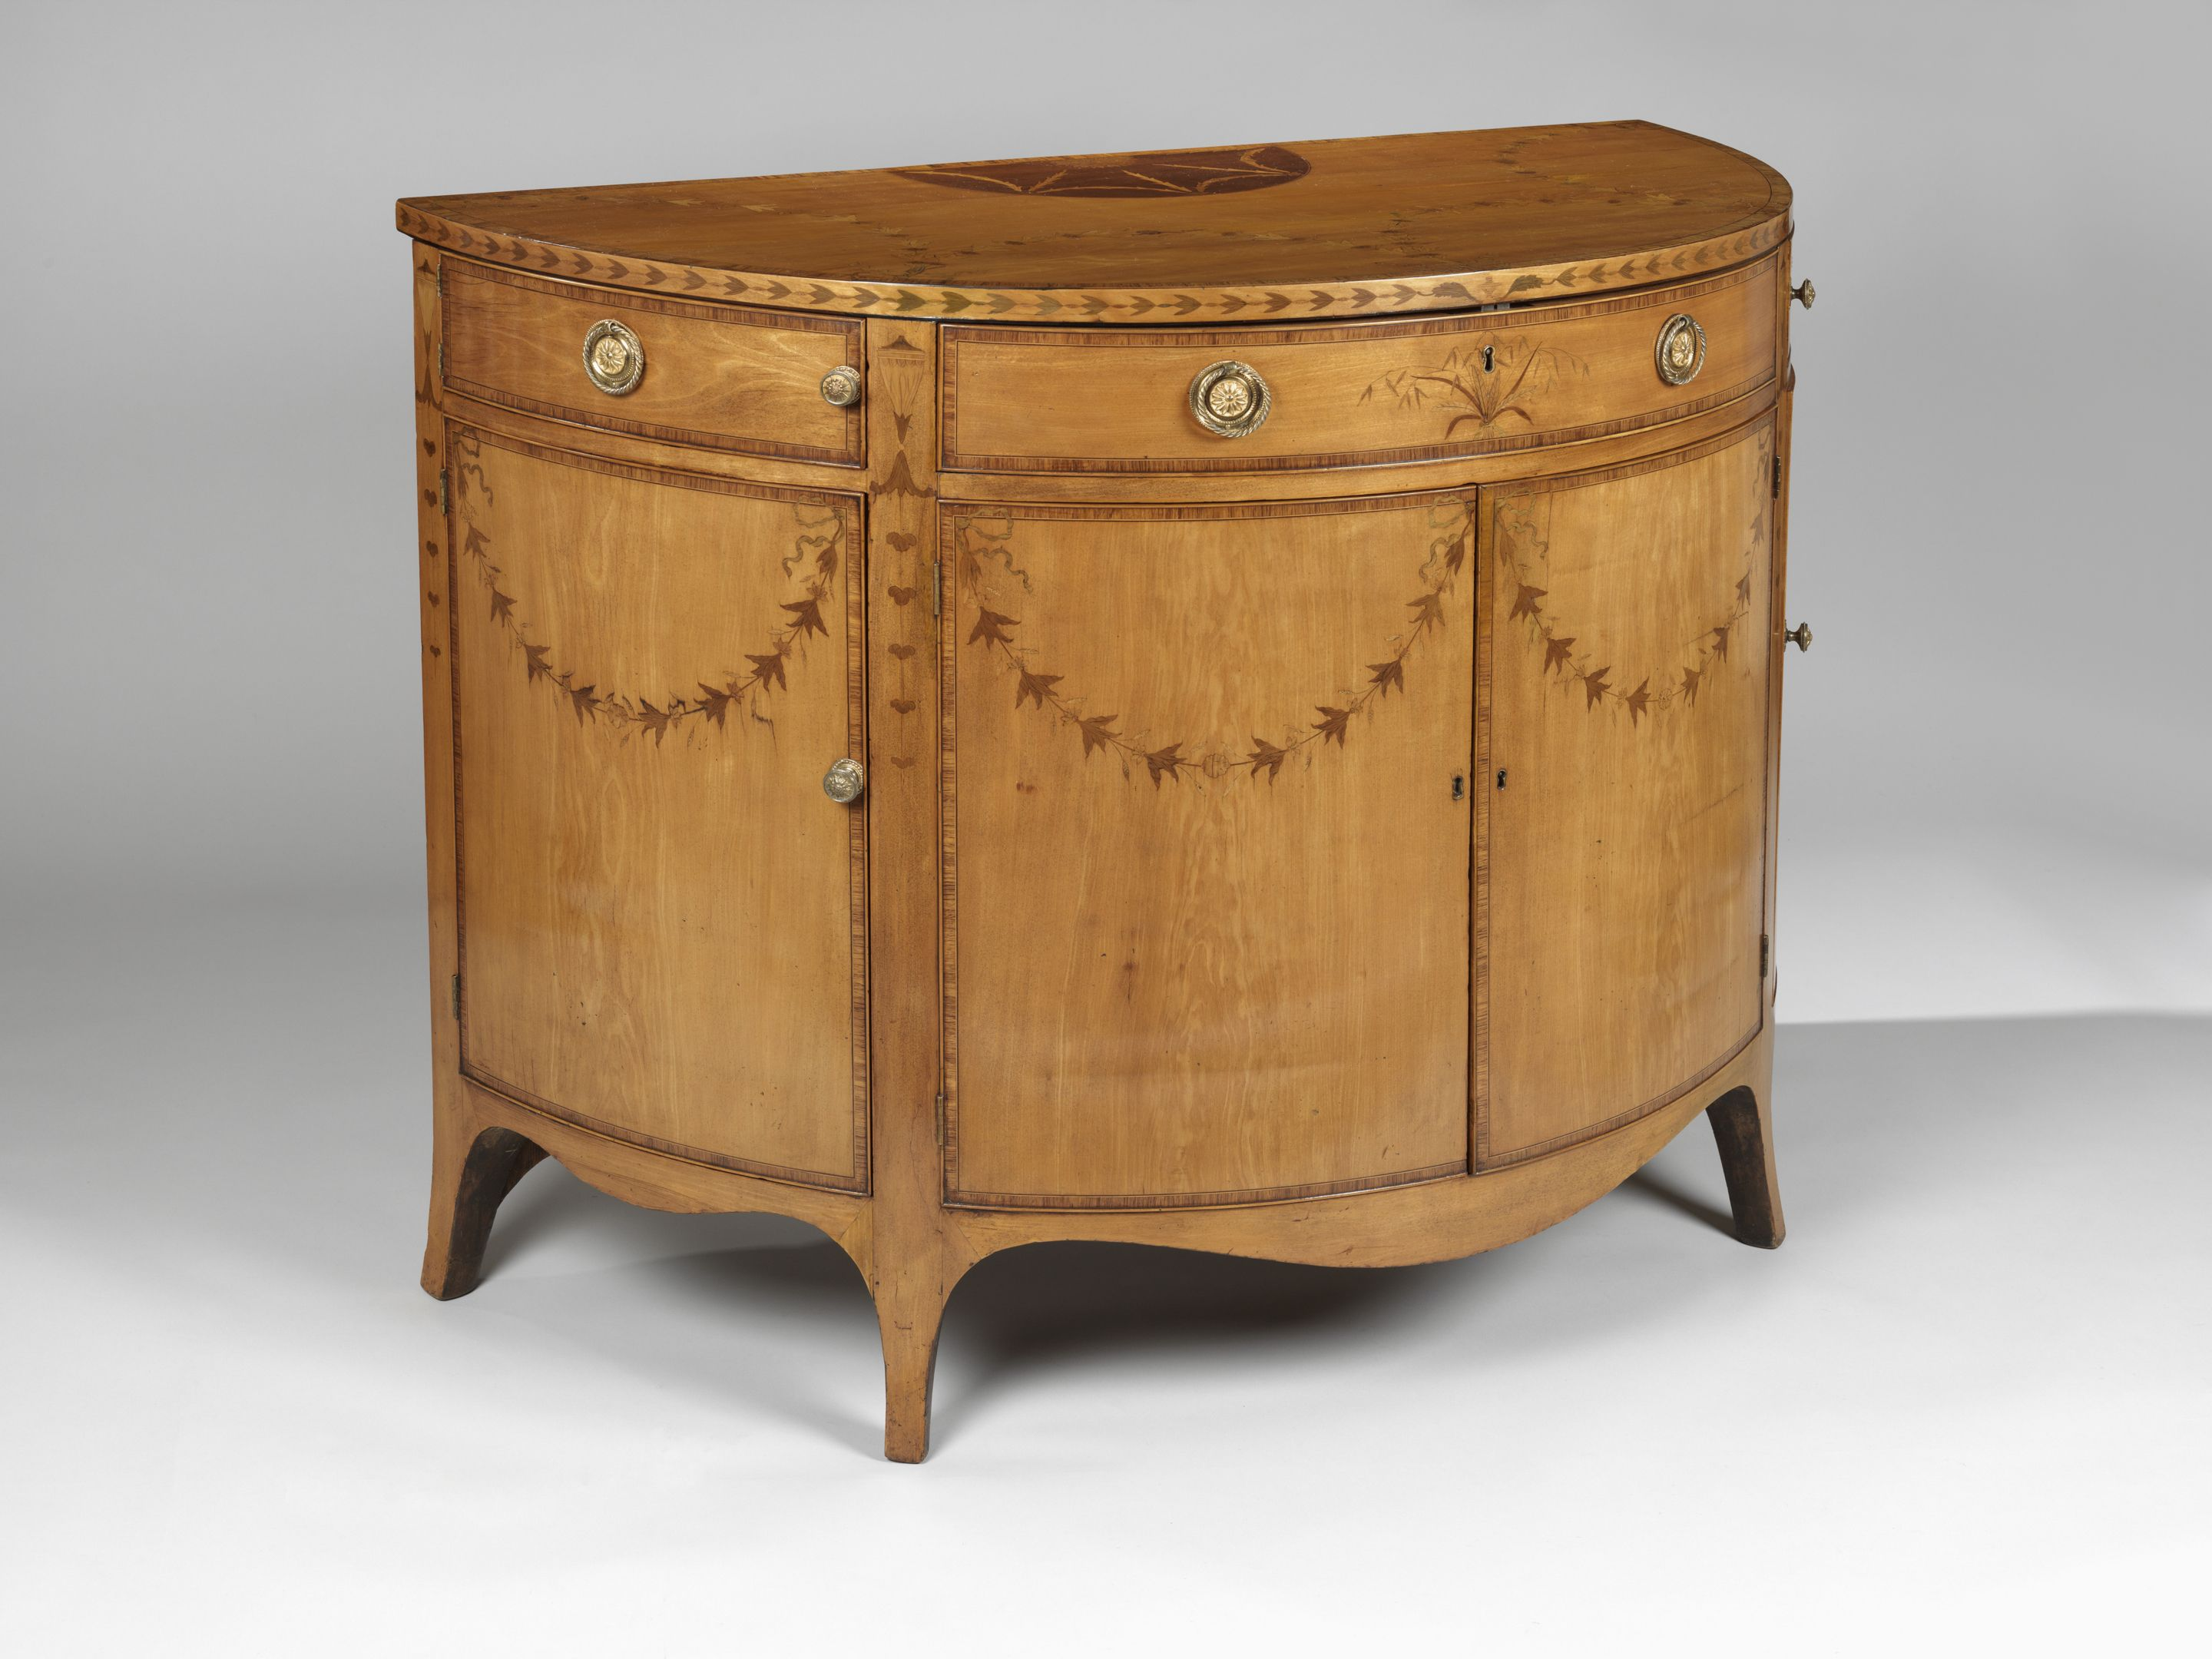 Hepplewhite Furniture - George Iii Hepplewhite Commode